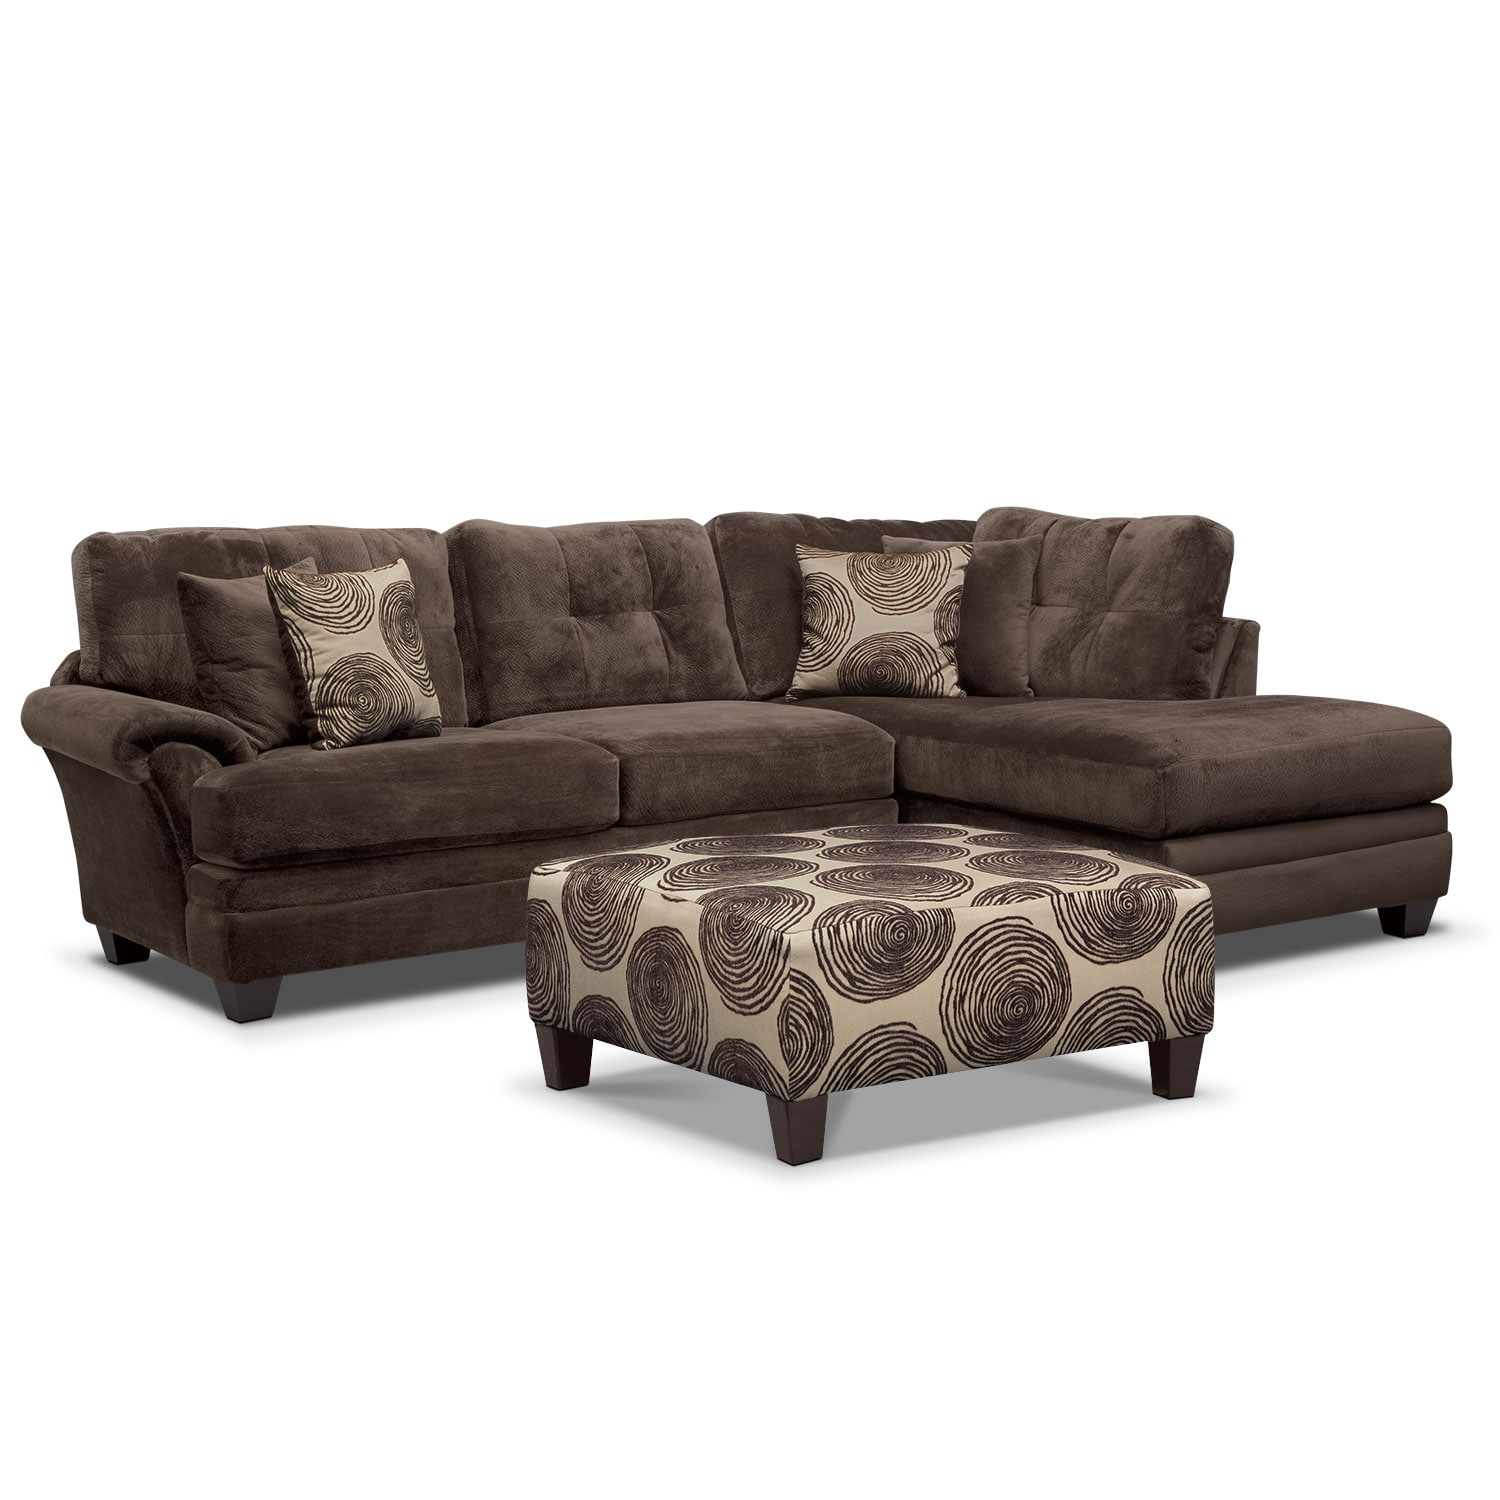 Chaise Cocktail Cordelle 2 Piece Sectional With Right Facing Chaise And Cocktail Ottoman Set Chocolate